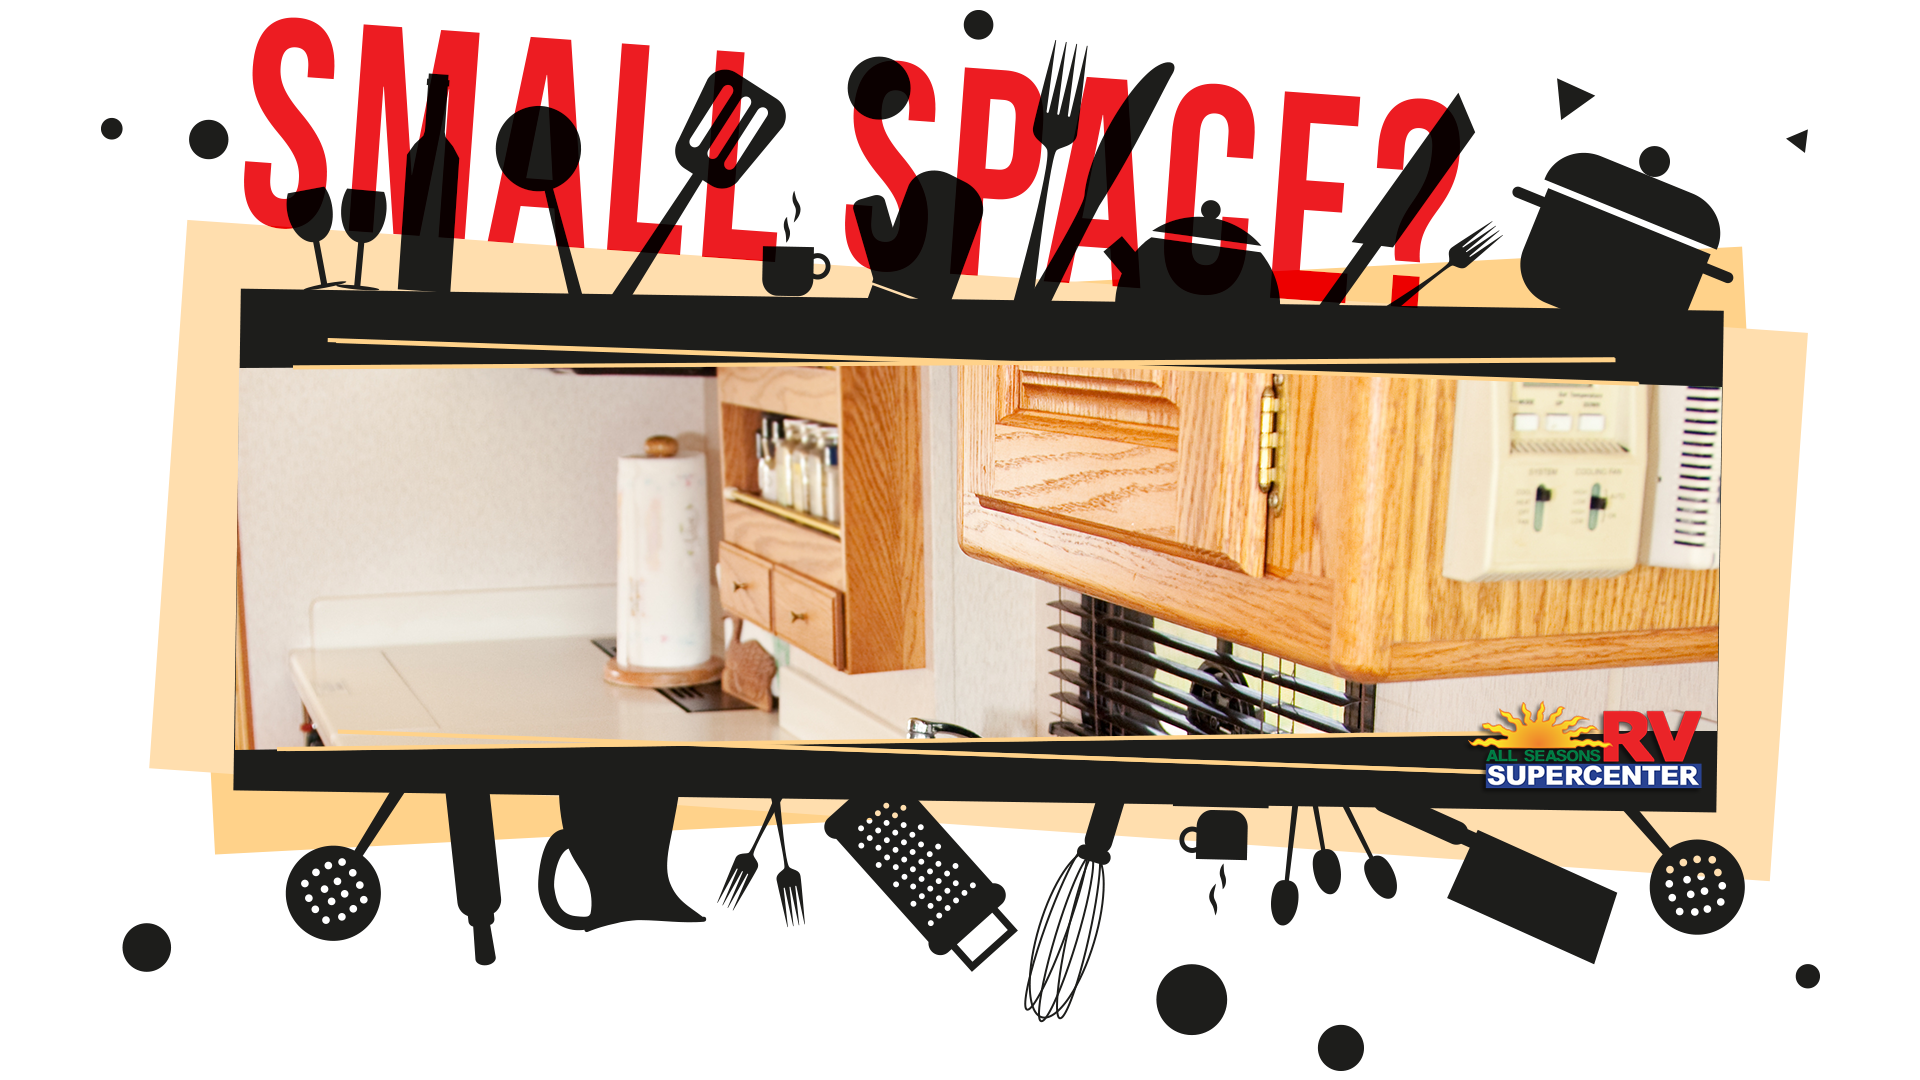 small space? RV kitchen with appliances